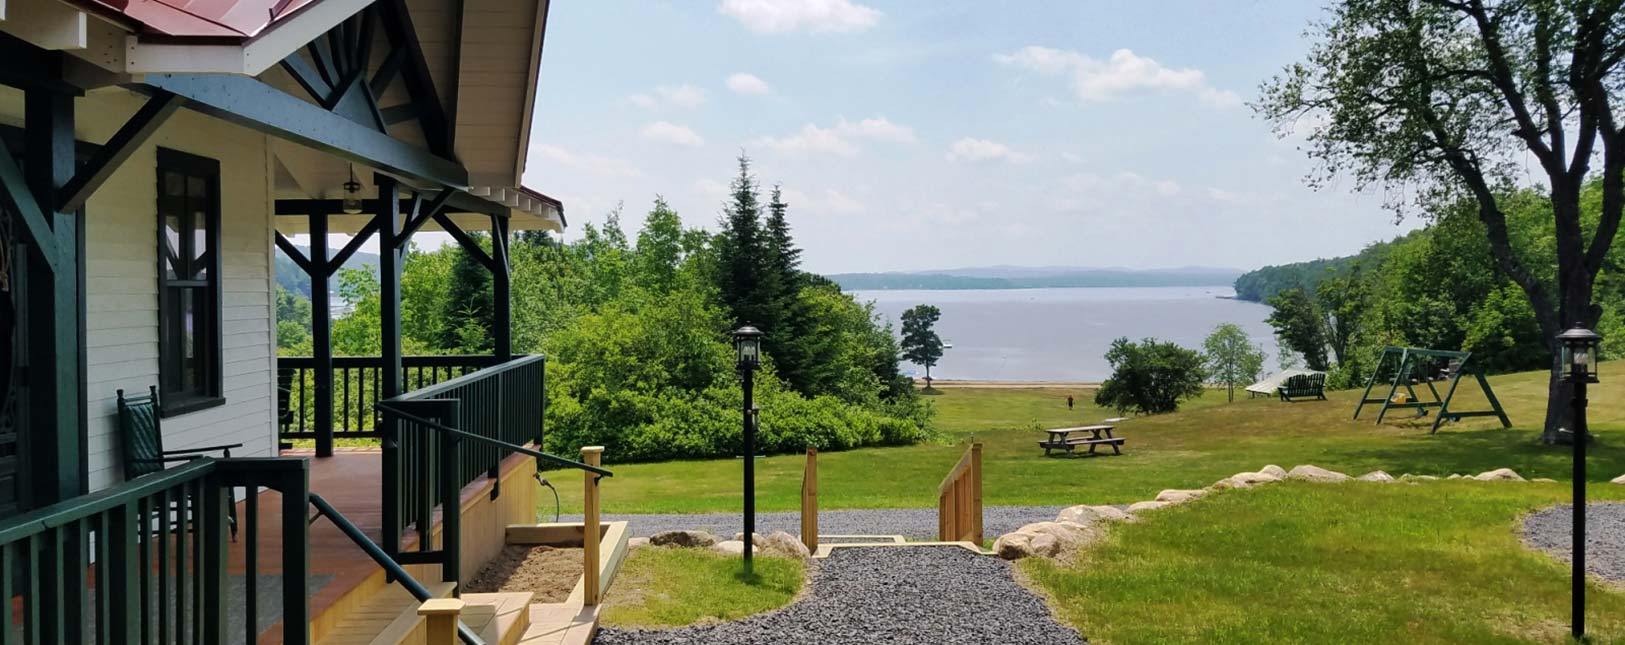 View from new porch